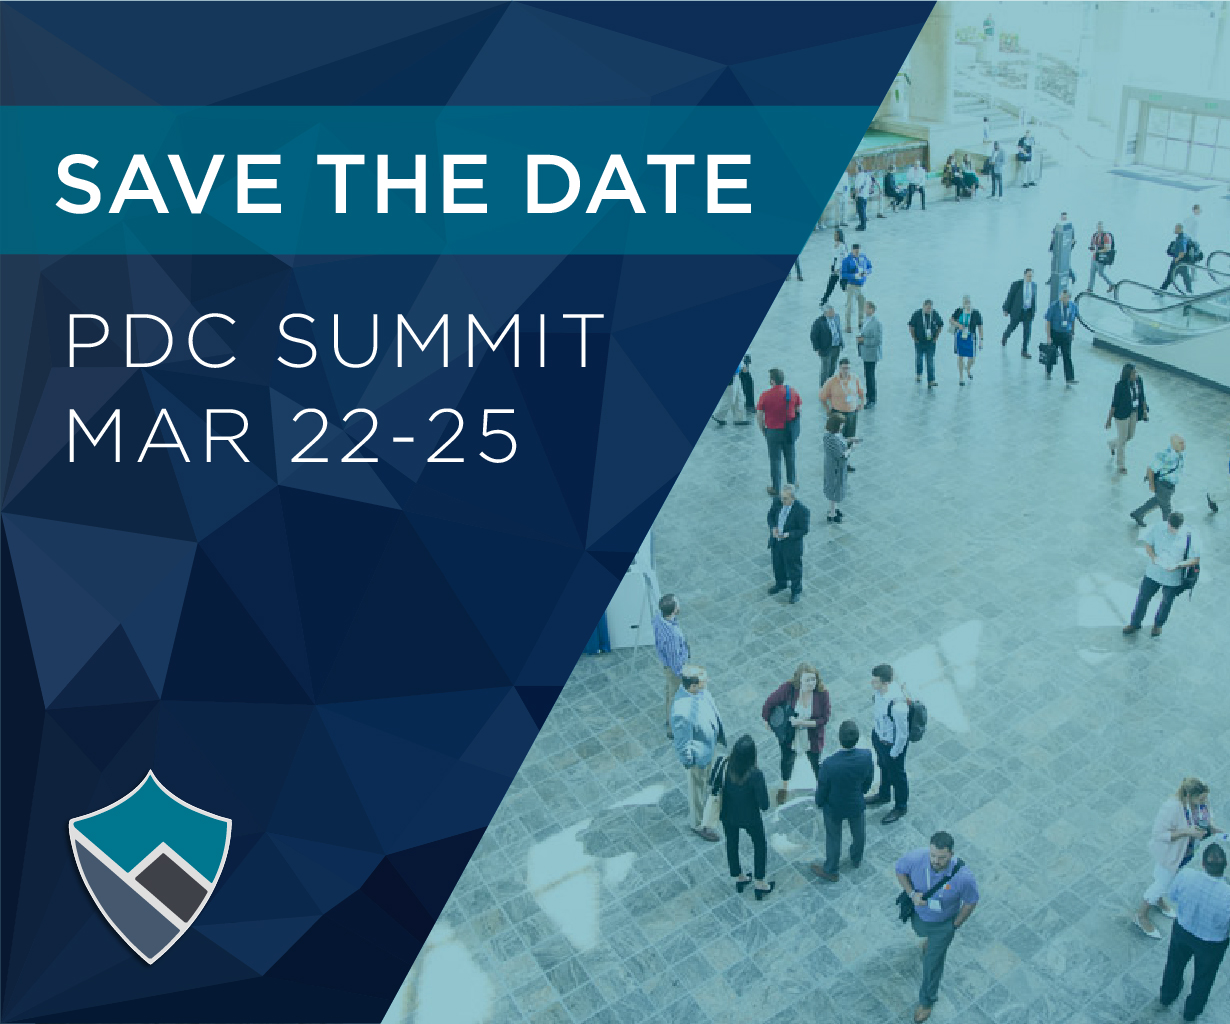 Serenity to attend 2020 PDC Summit